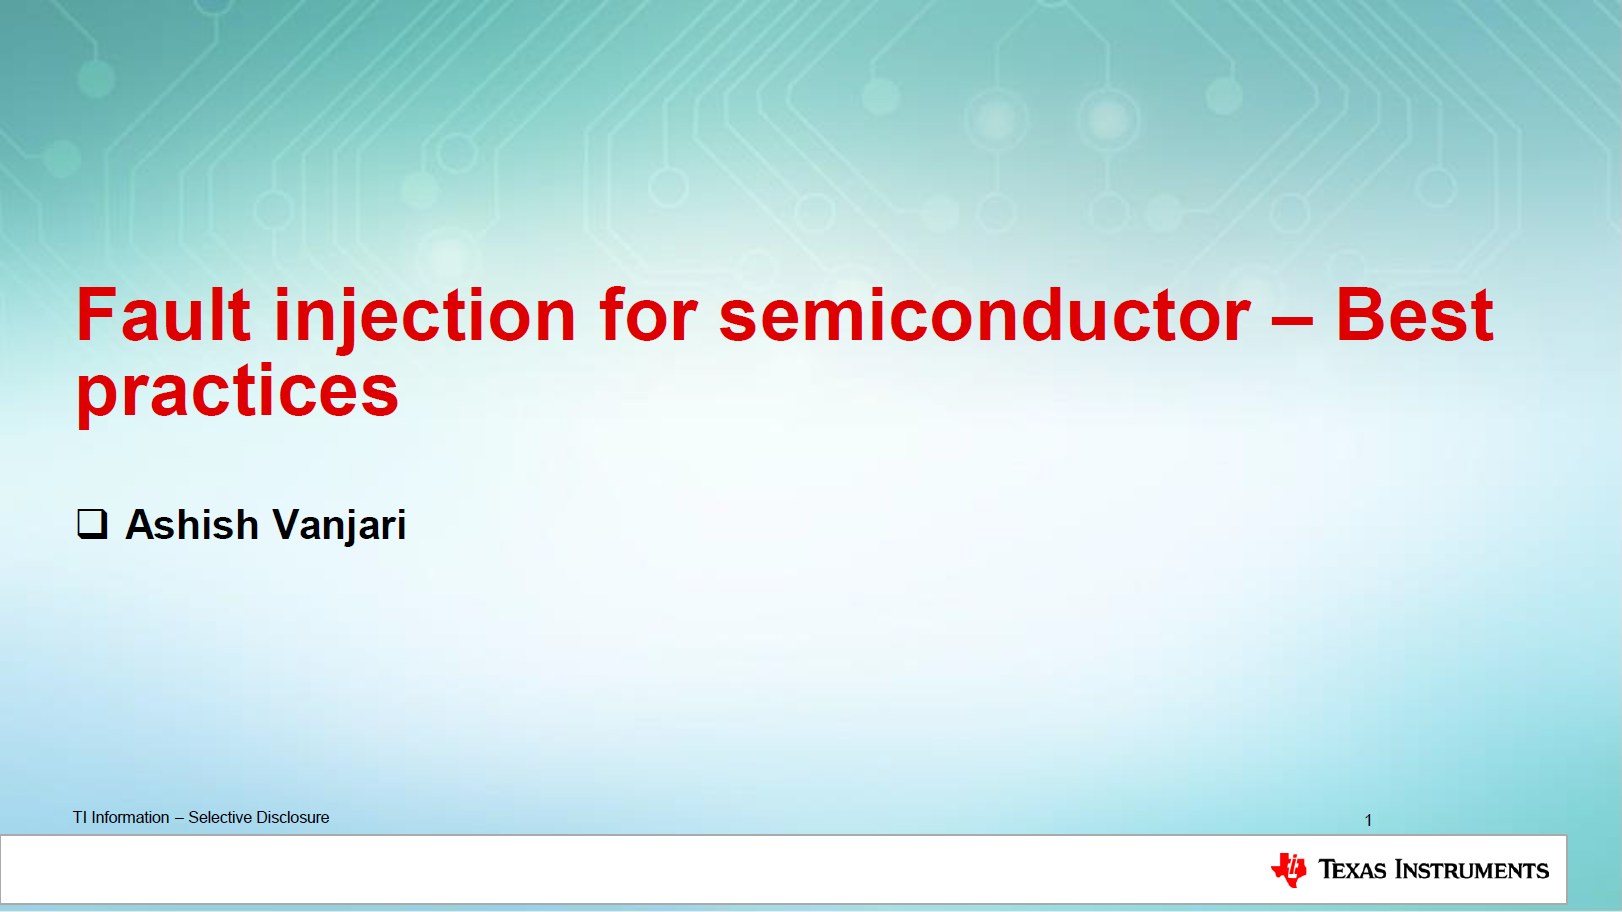 Texas Instruments Presentation: Best Practices - Fault Injection for Semiconductor